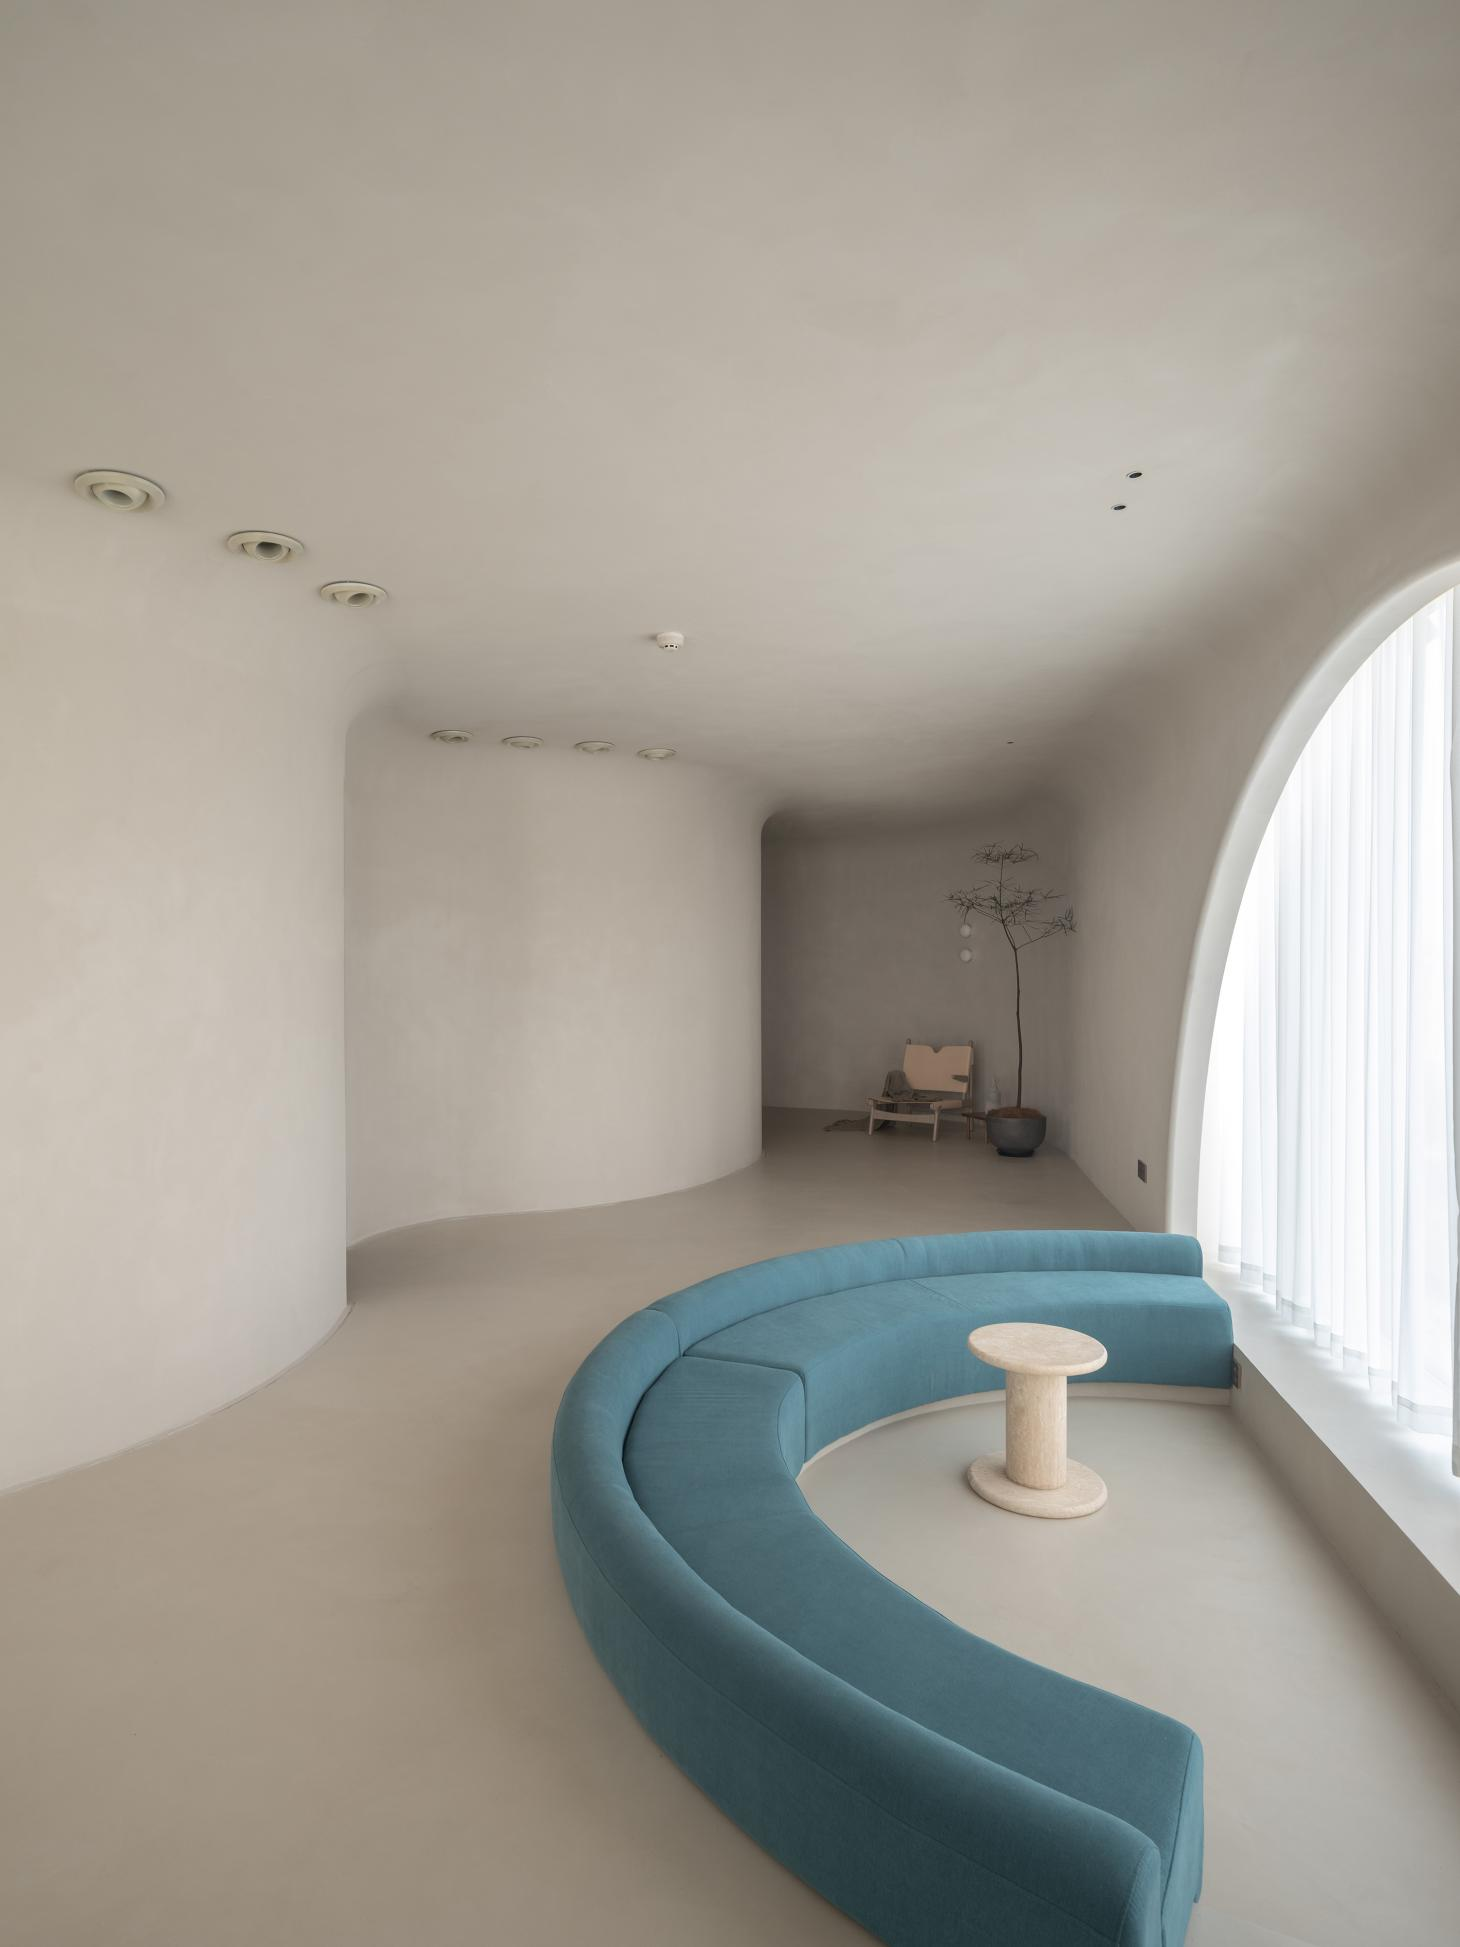 Lounge area of Soul Realm Spa House in Hangzhou, China with white curving walls